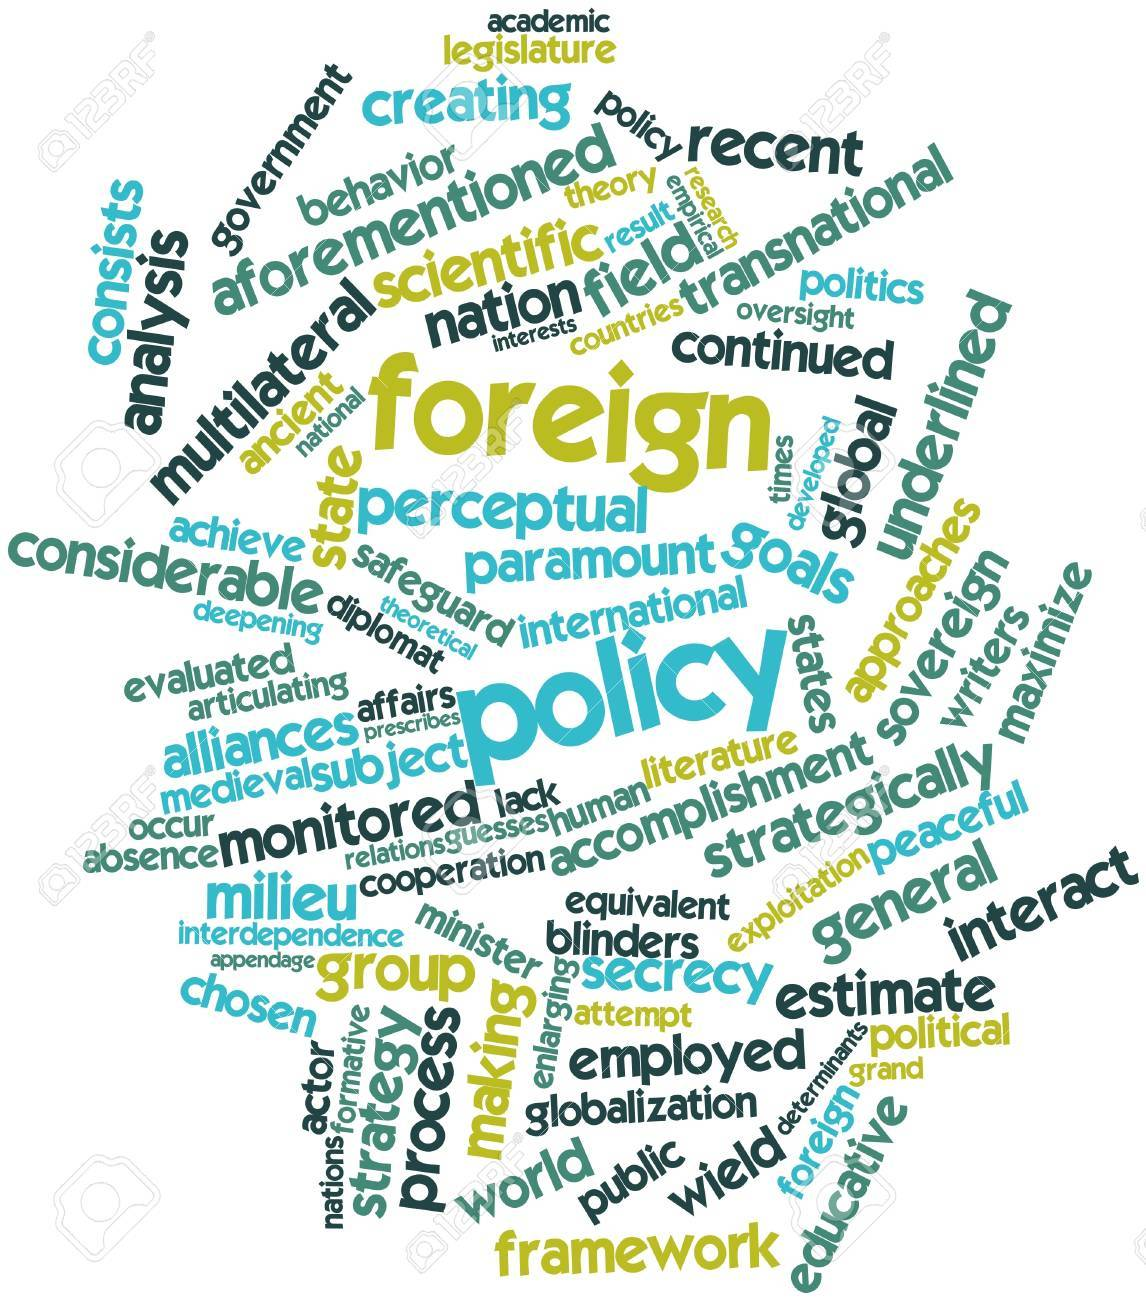 Abstract Word Cloud For Foreign Policy With Related Tags And  Abstract Word Cloud For Foreign Policy With Related Tags And Terms Stock Photo Photo  Abstract Word Cloud For Foreign Policy With Related Tags And Terms